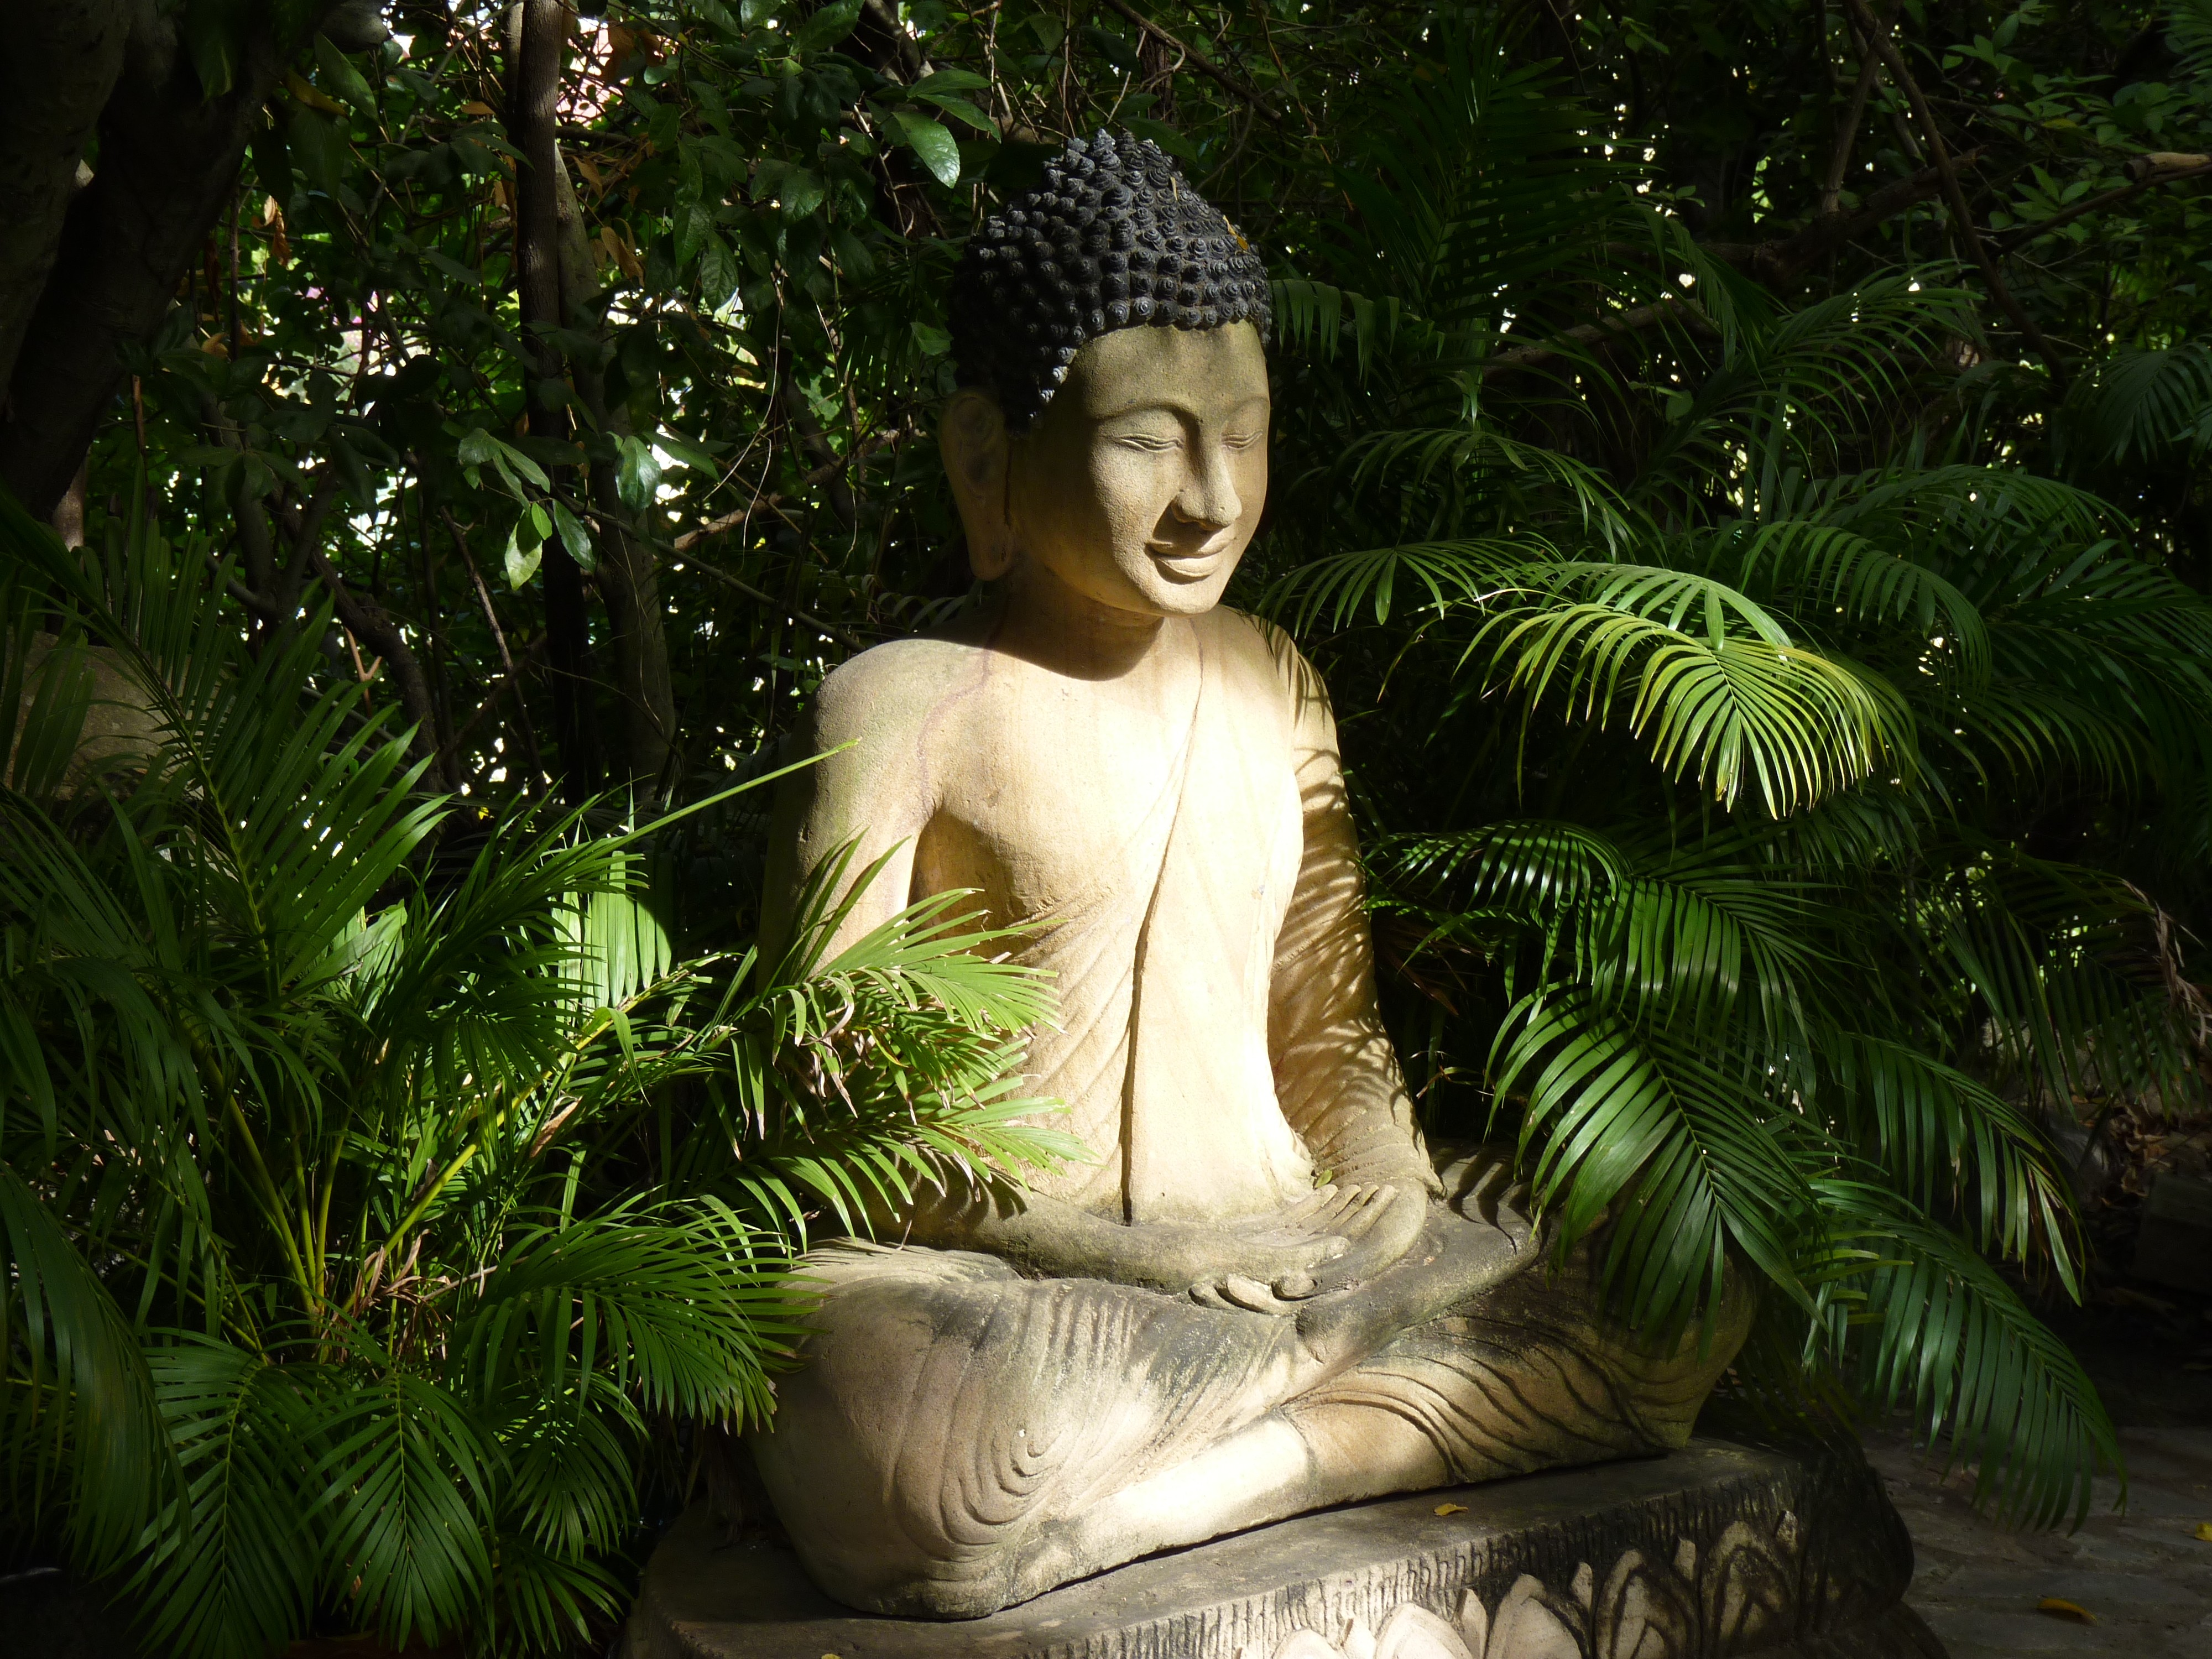 File:Buddha Sculpture In The Garden Of Silver Pagoda (Phnom Penh, Cambodia)